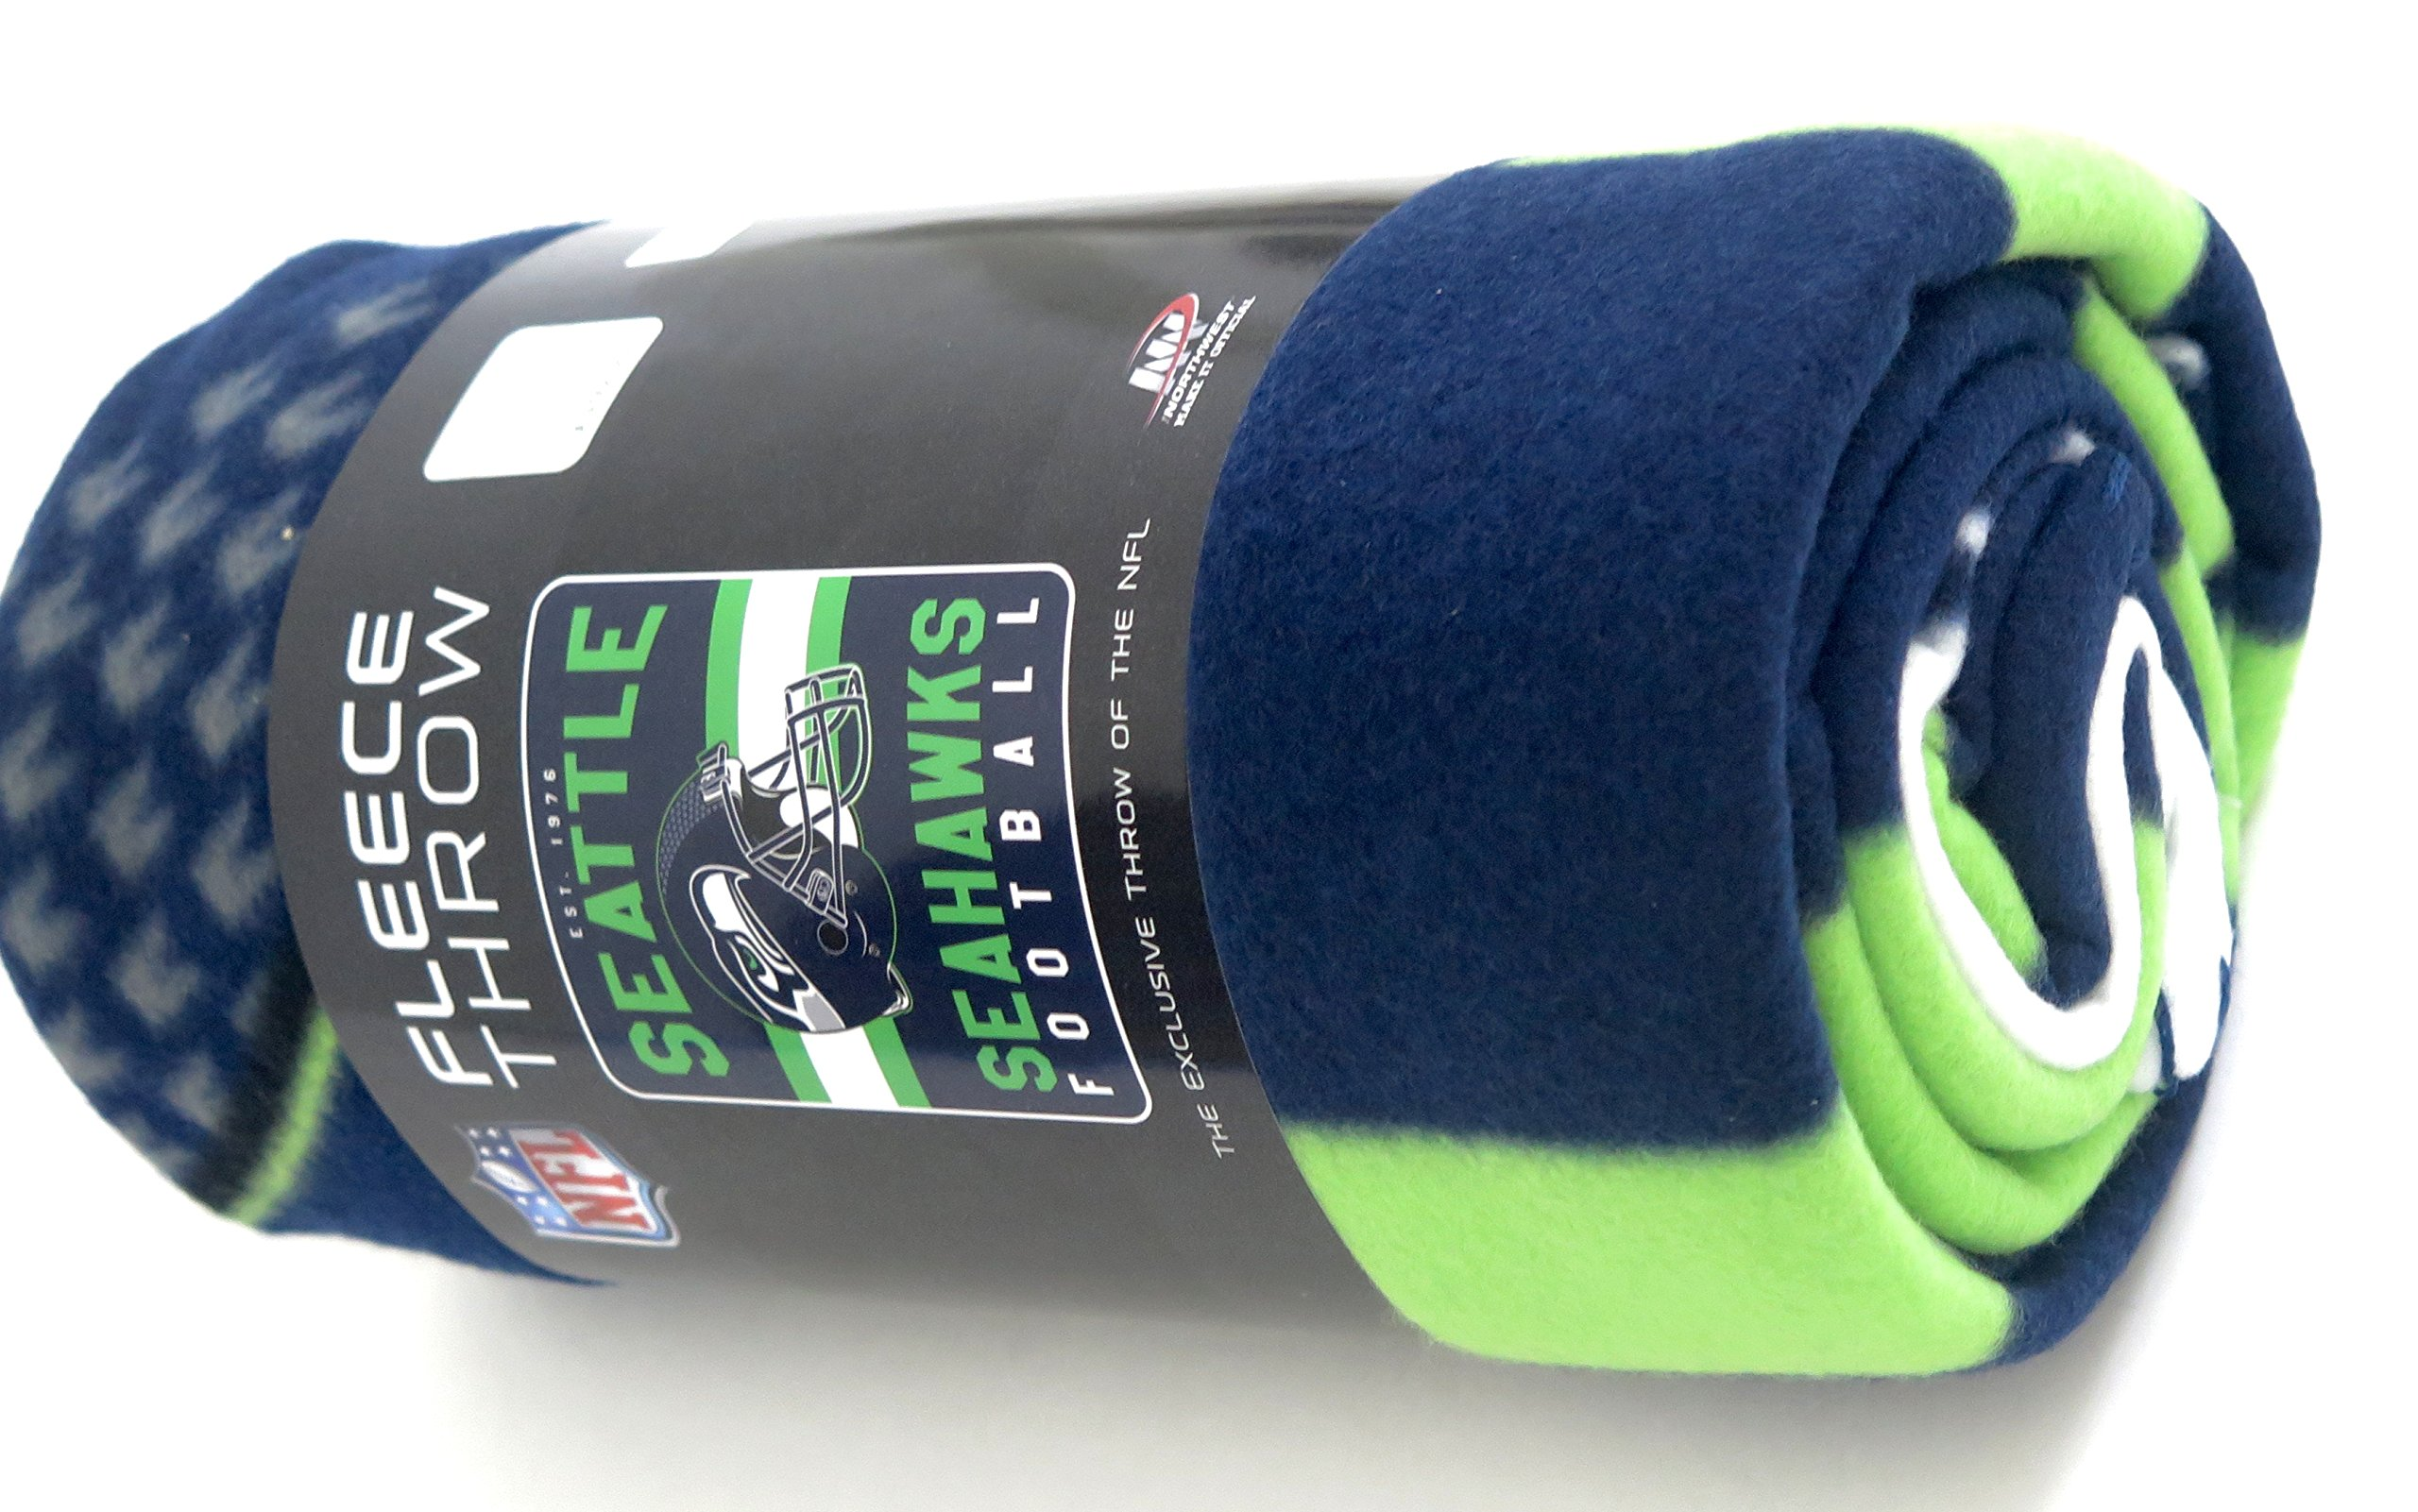 Seattle Seahawks Blanket. This soft fleece throw blanket will keep you warm at the game or ar home.